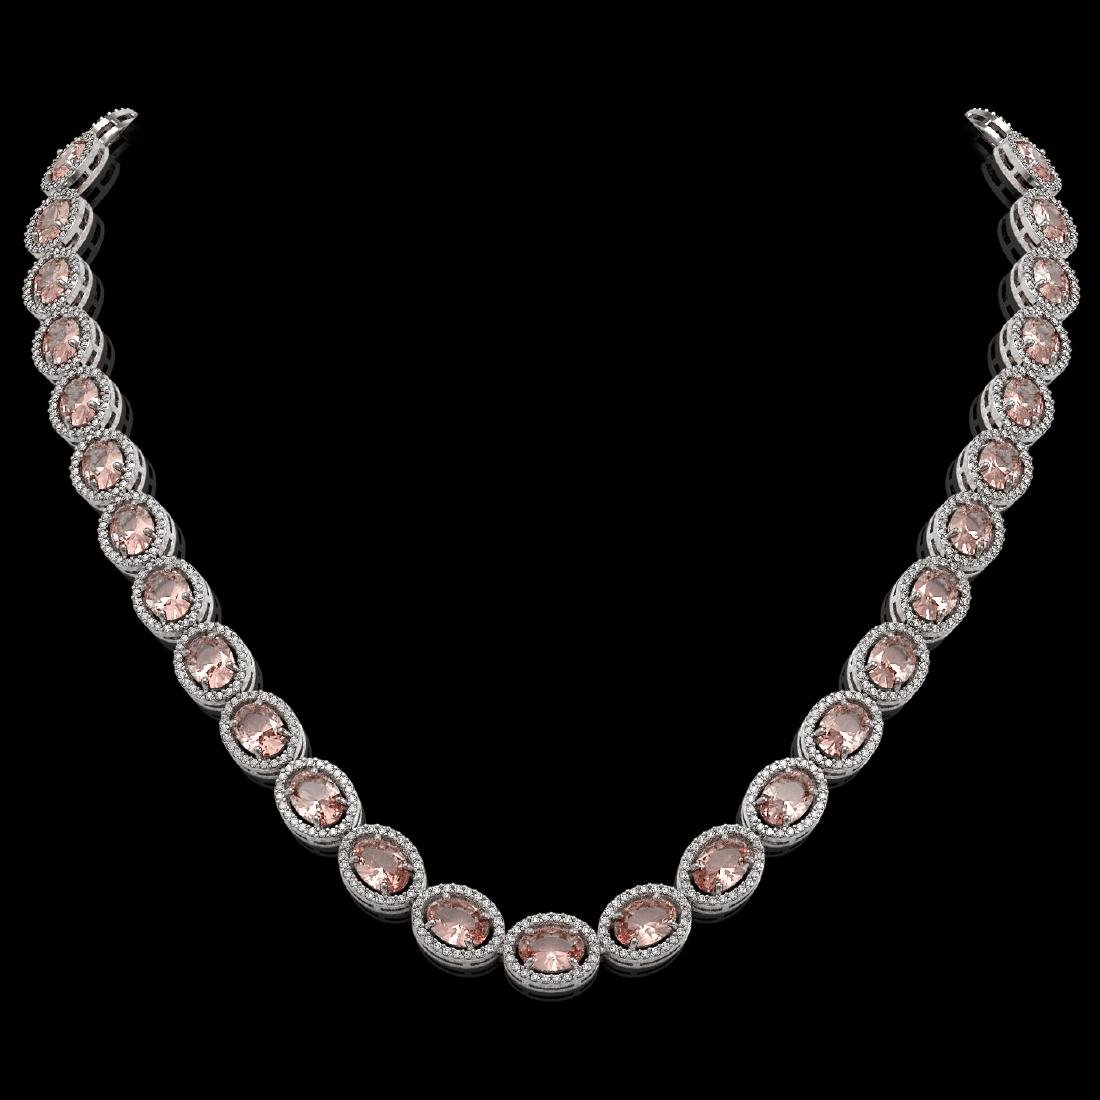 45.98 CTW Morganite & Diamond Halo Necklace 10K White